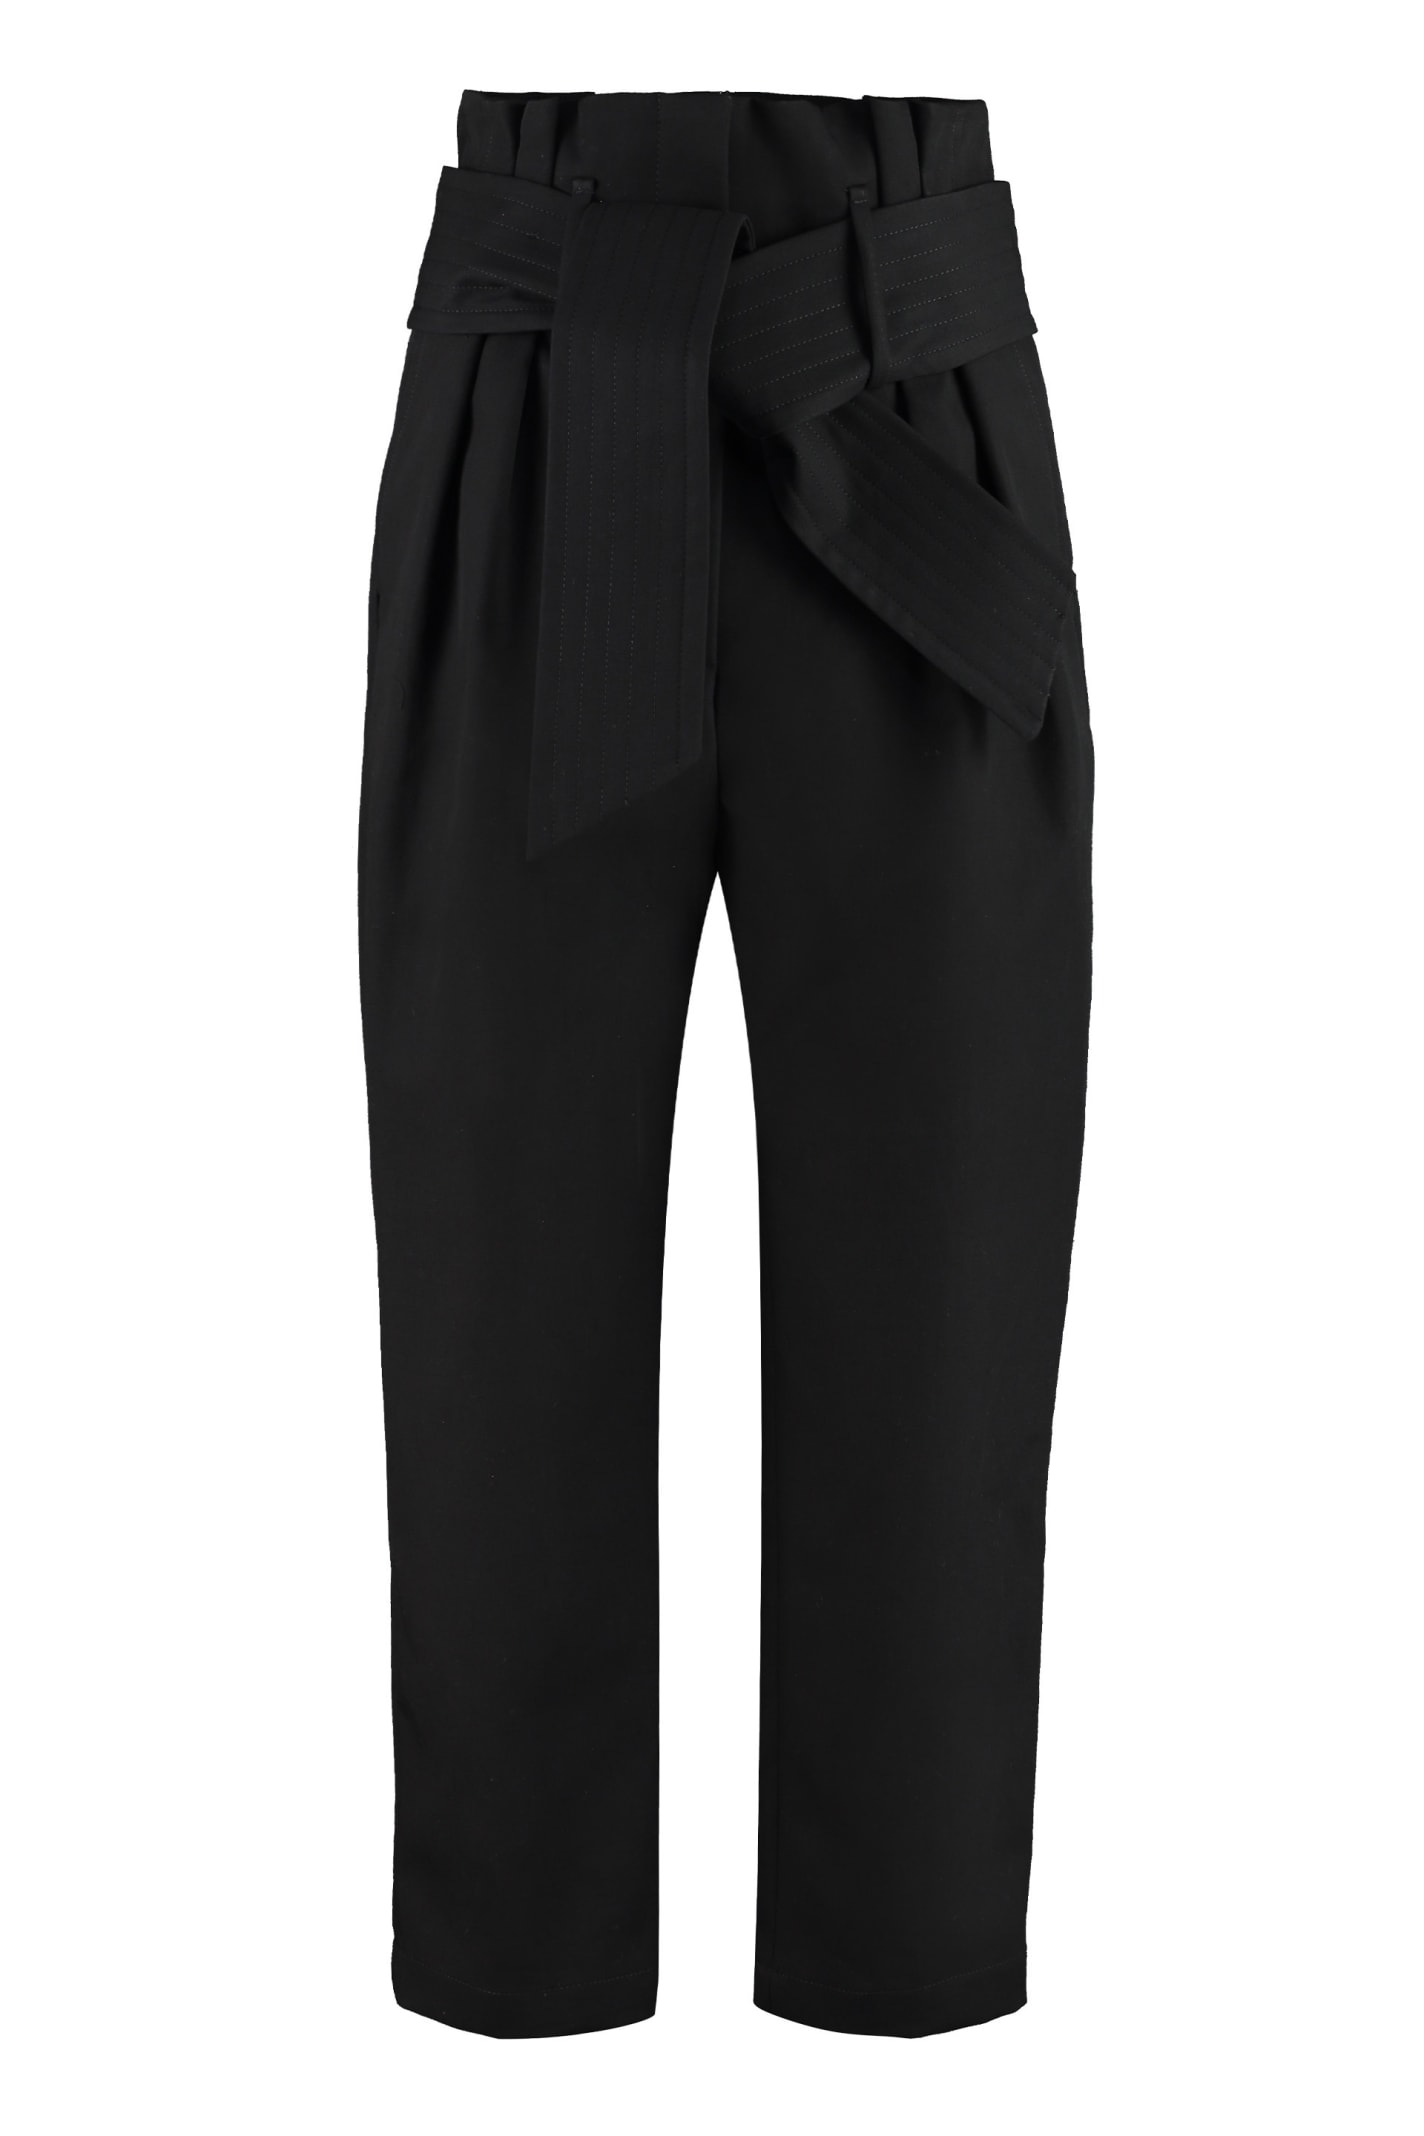 Iro RITOKIE HIGH-WAIST TAPERED-FIT TROUSERS